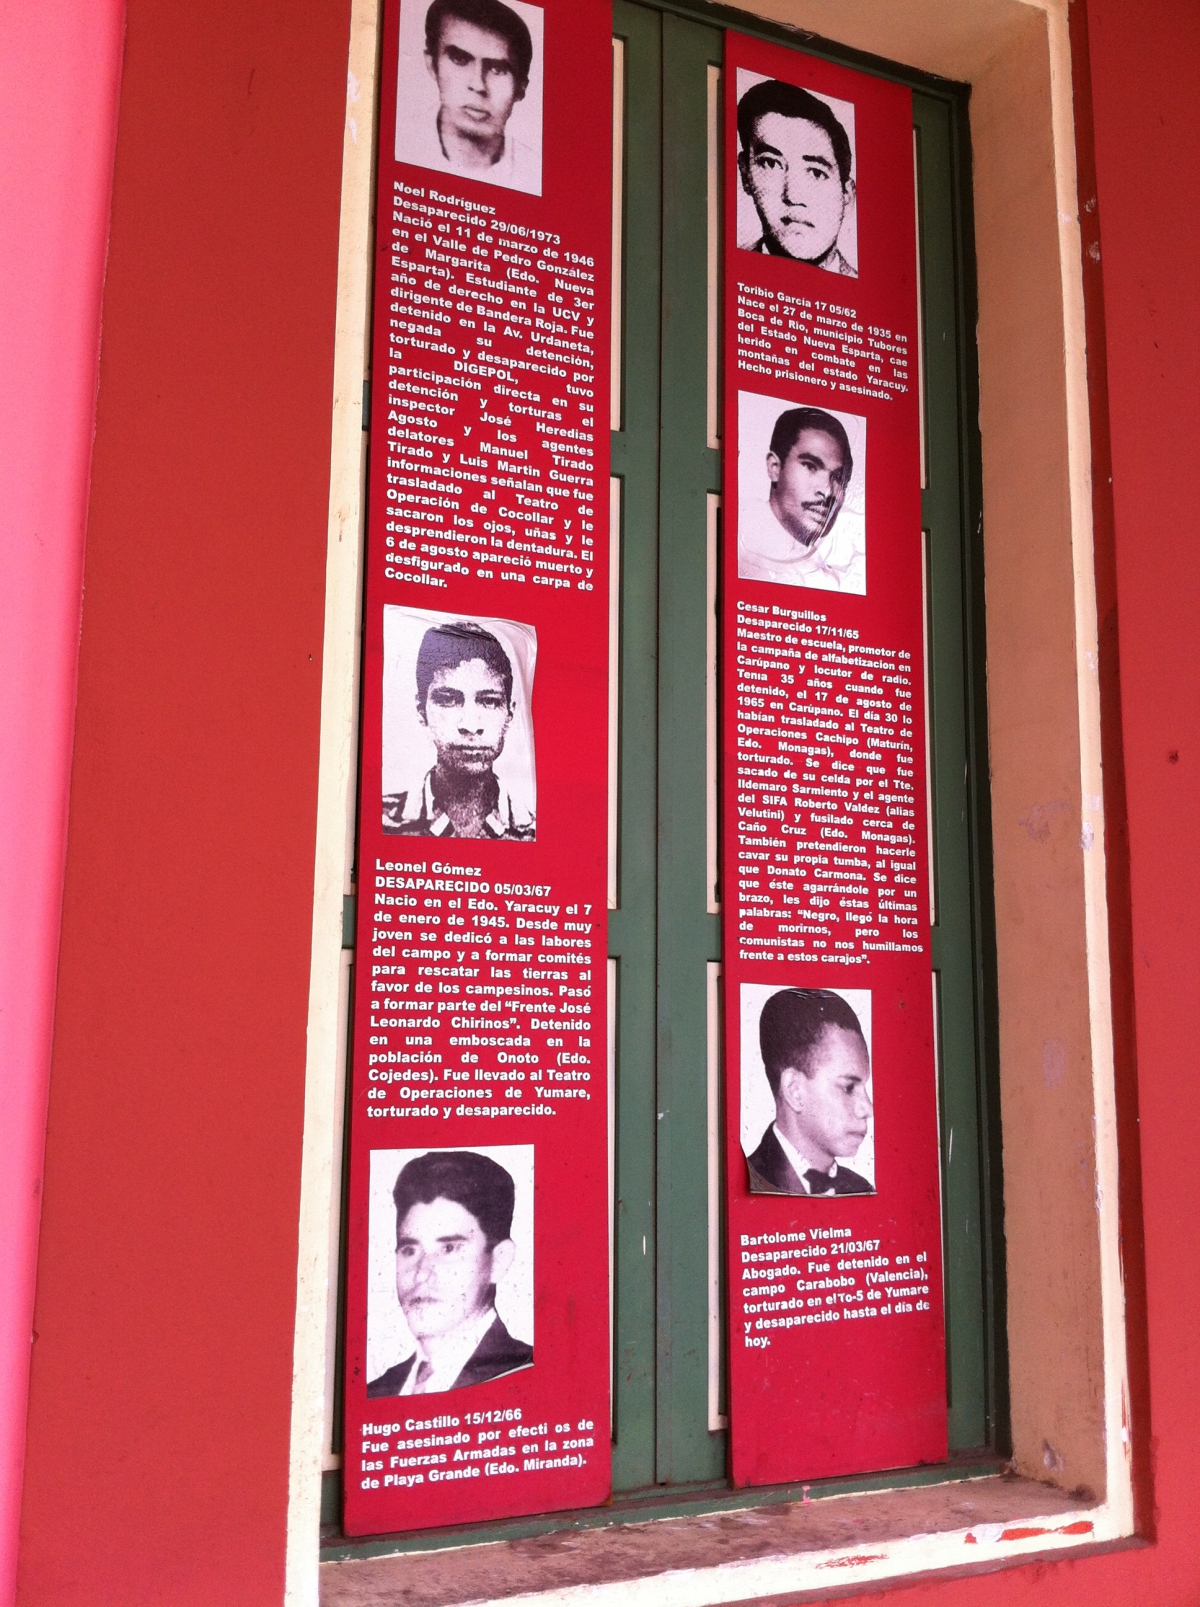 Photos of political prisoners detained at San Carlos between 1960-1979,  on a wall of the former prison in an exhibit maintained by a civic association of former combatants and political prisoners. (all photos credt of Venezuelanalysis.com / Cory Fischer - Hoffman)